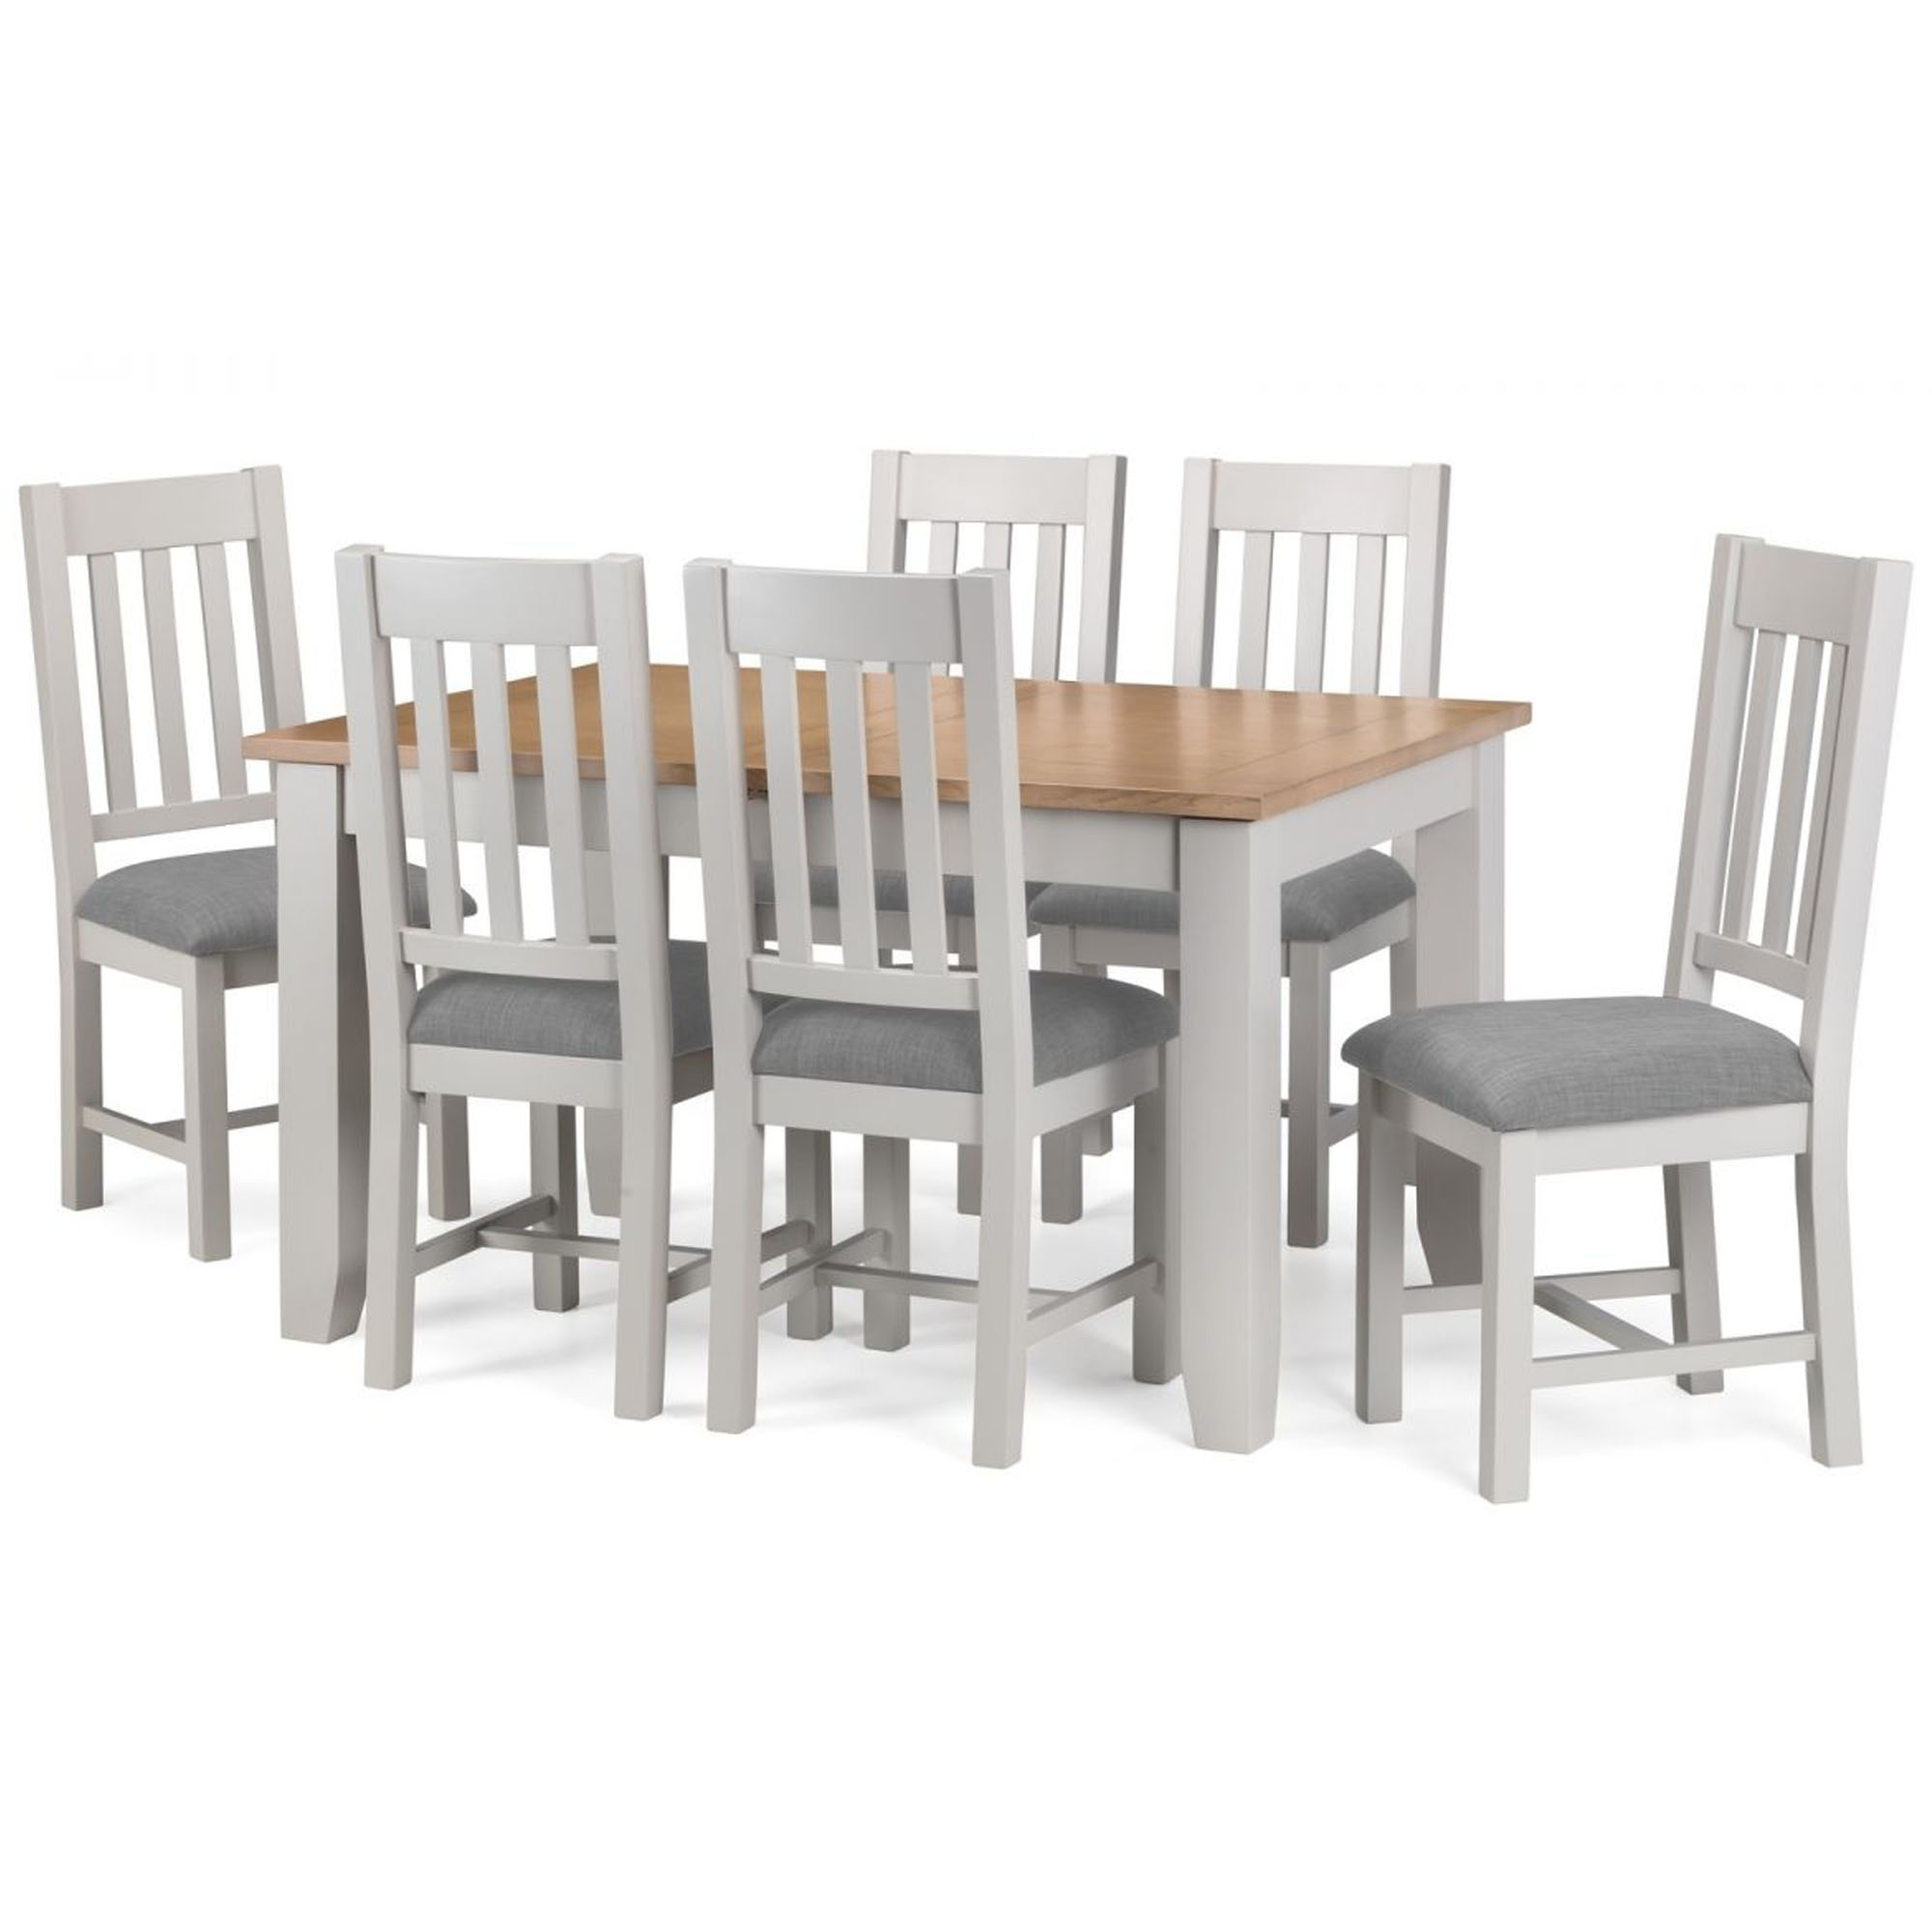 Richmond 2 tone oak dining set modern dining furniture